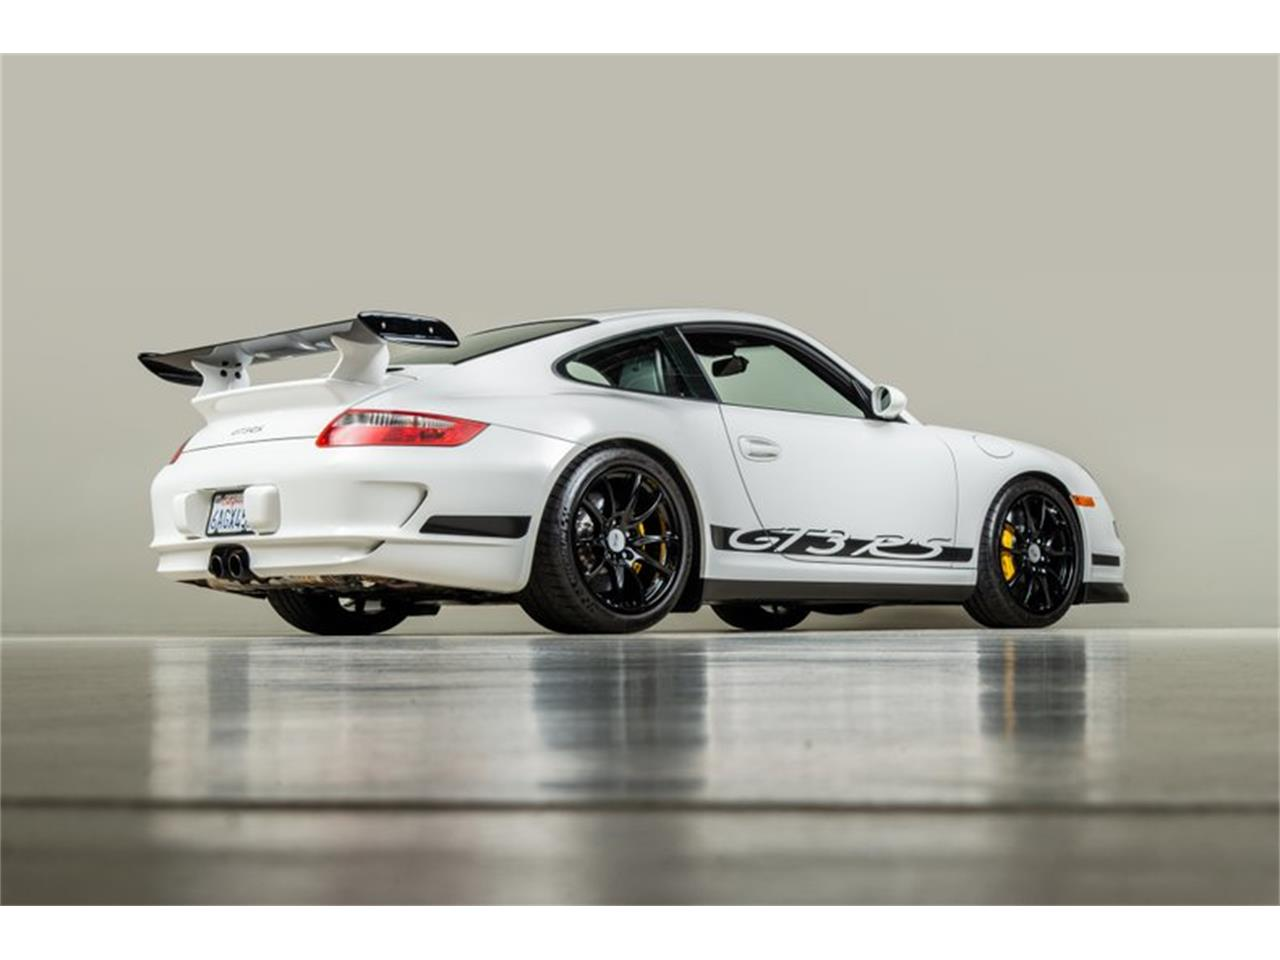 Large Picture of 2007 Porsche 911 located in California Auction Vehicle Offered by Canepa - QTBQ